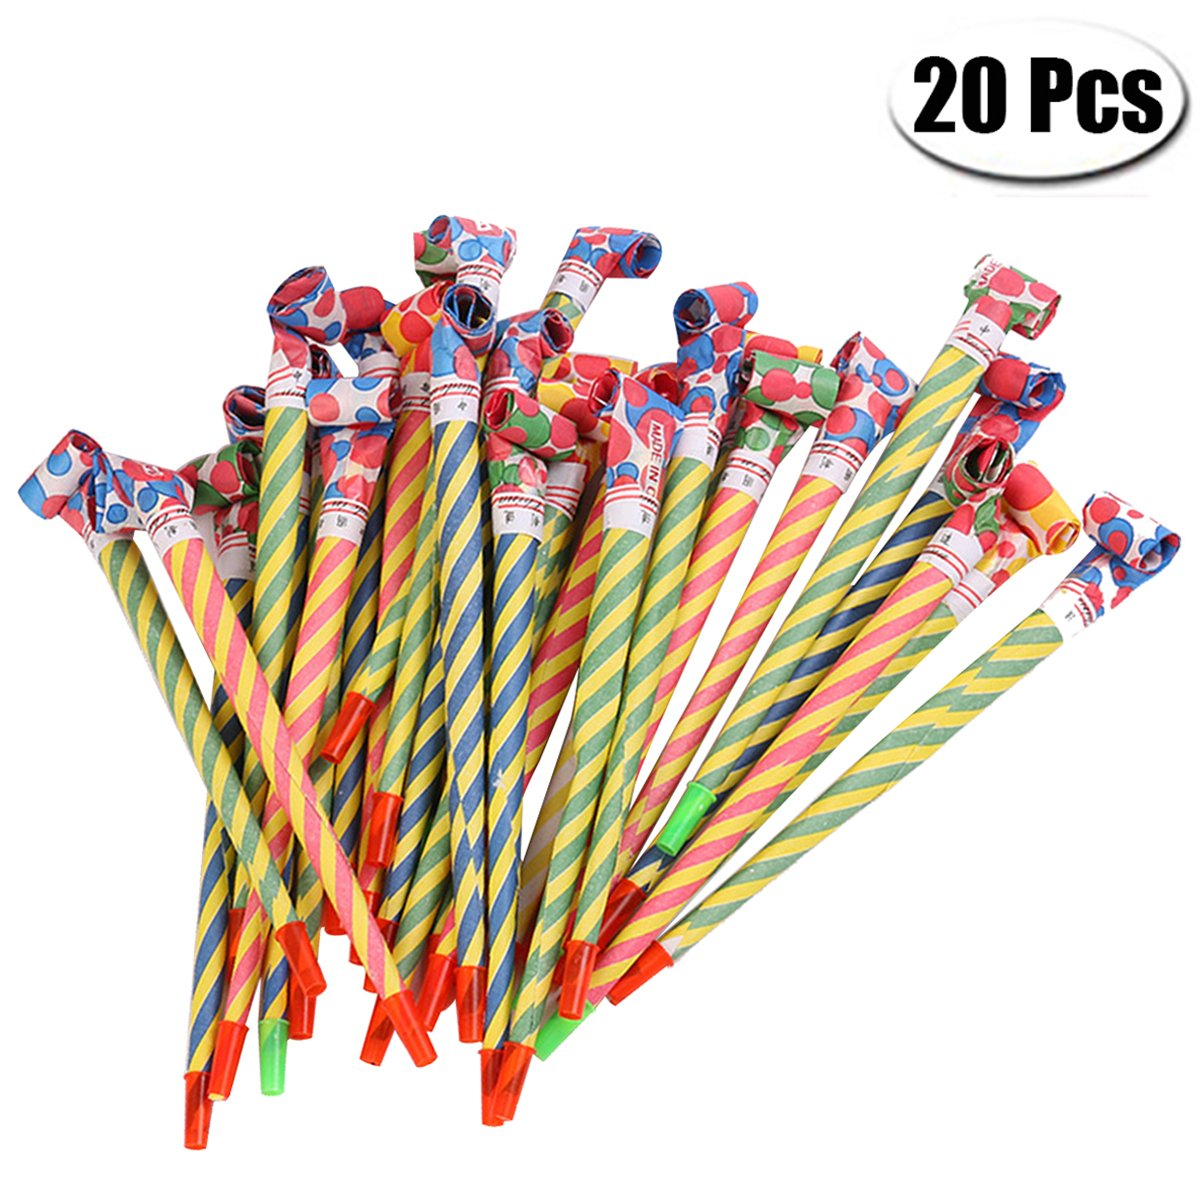 PartyYeah 20 Pcs Extra Long 8.1Inch Funny Paper Party Blowouts Blowers-Noisemakers Whistles for New Year Party Birthday in Random Colors, Multicolored Funny Party Supplies